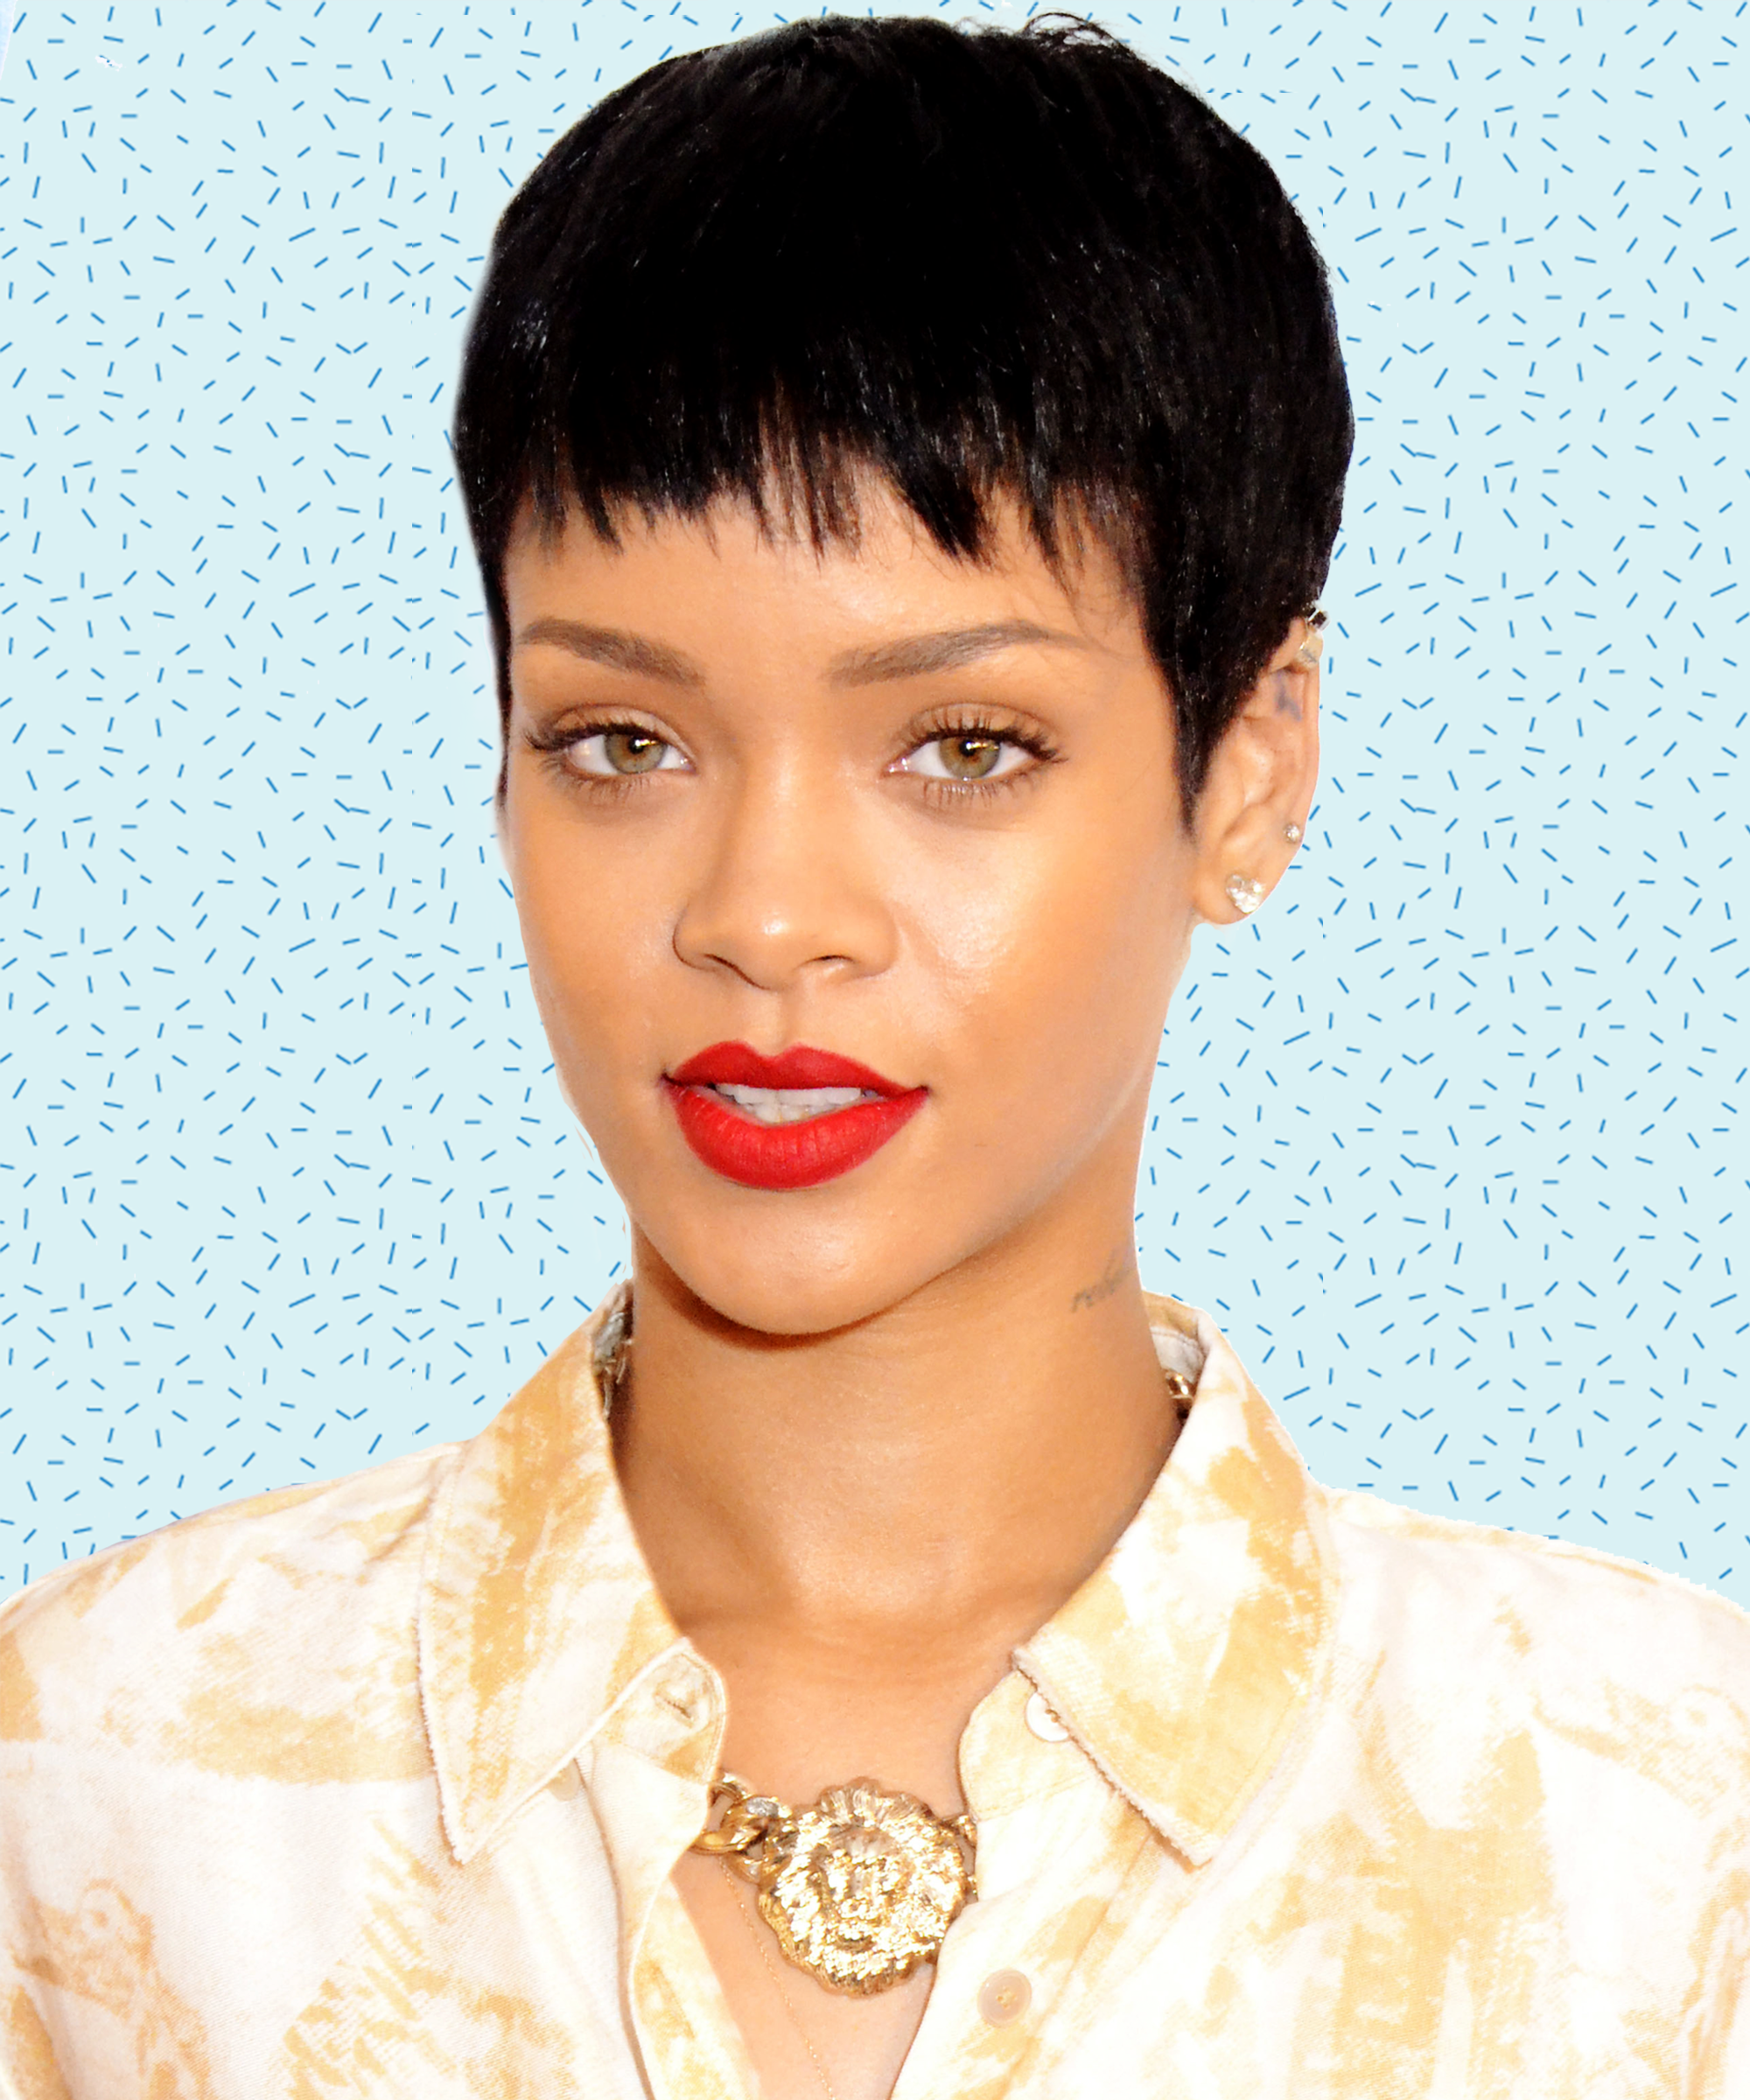 23 Pixie Cuts To Inspire Your Big Chop Pixie Cut Pixies And Pixie